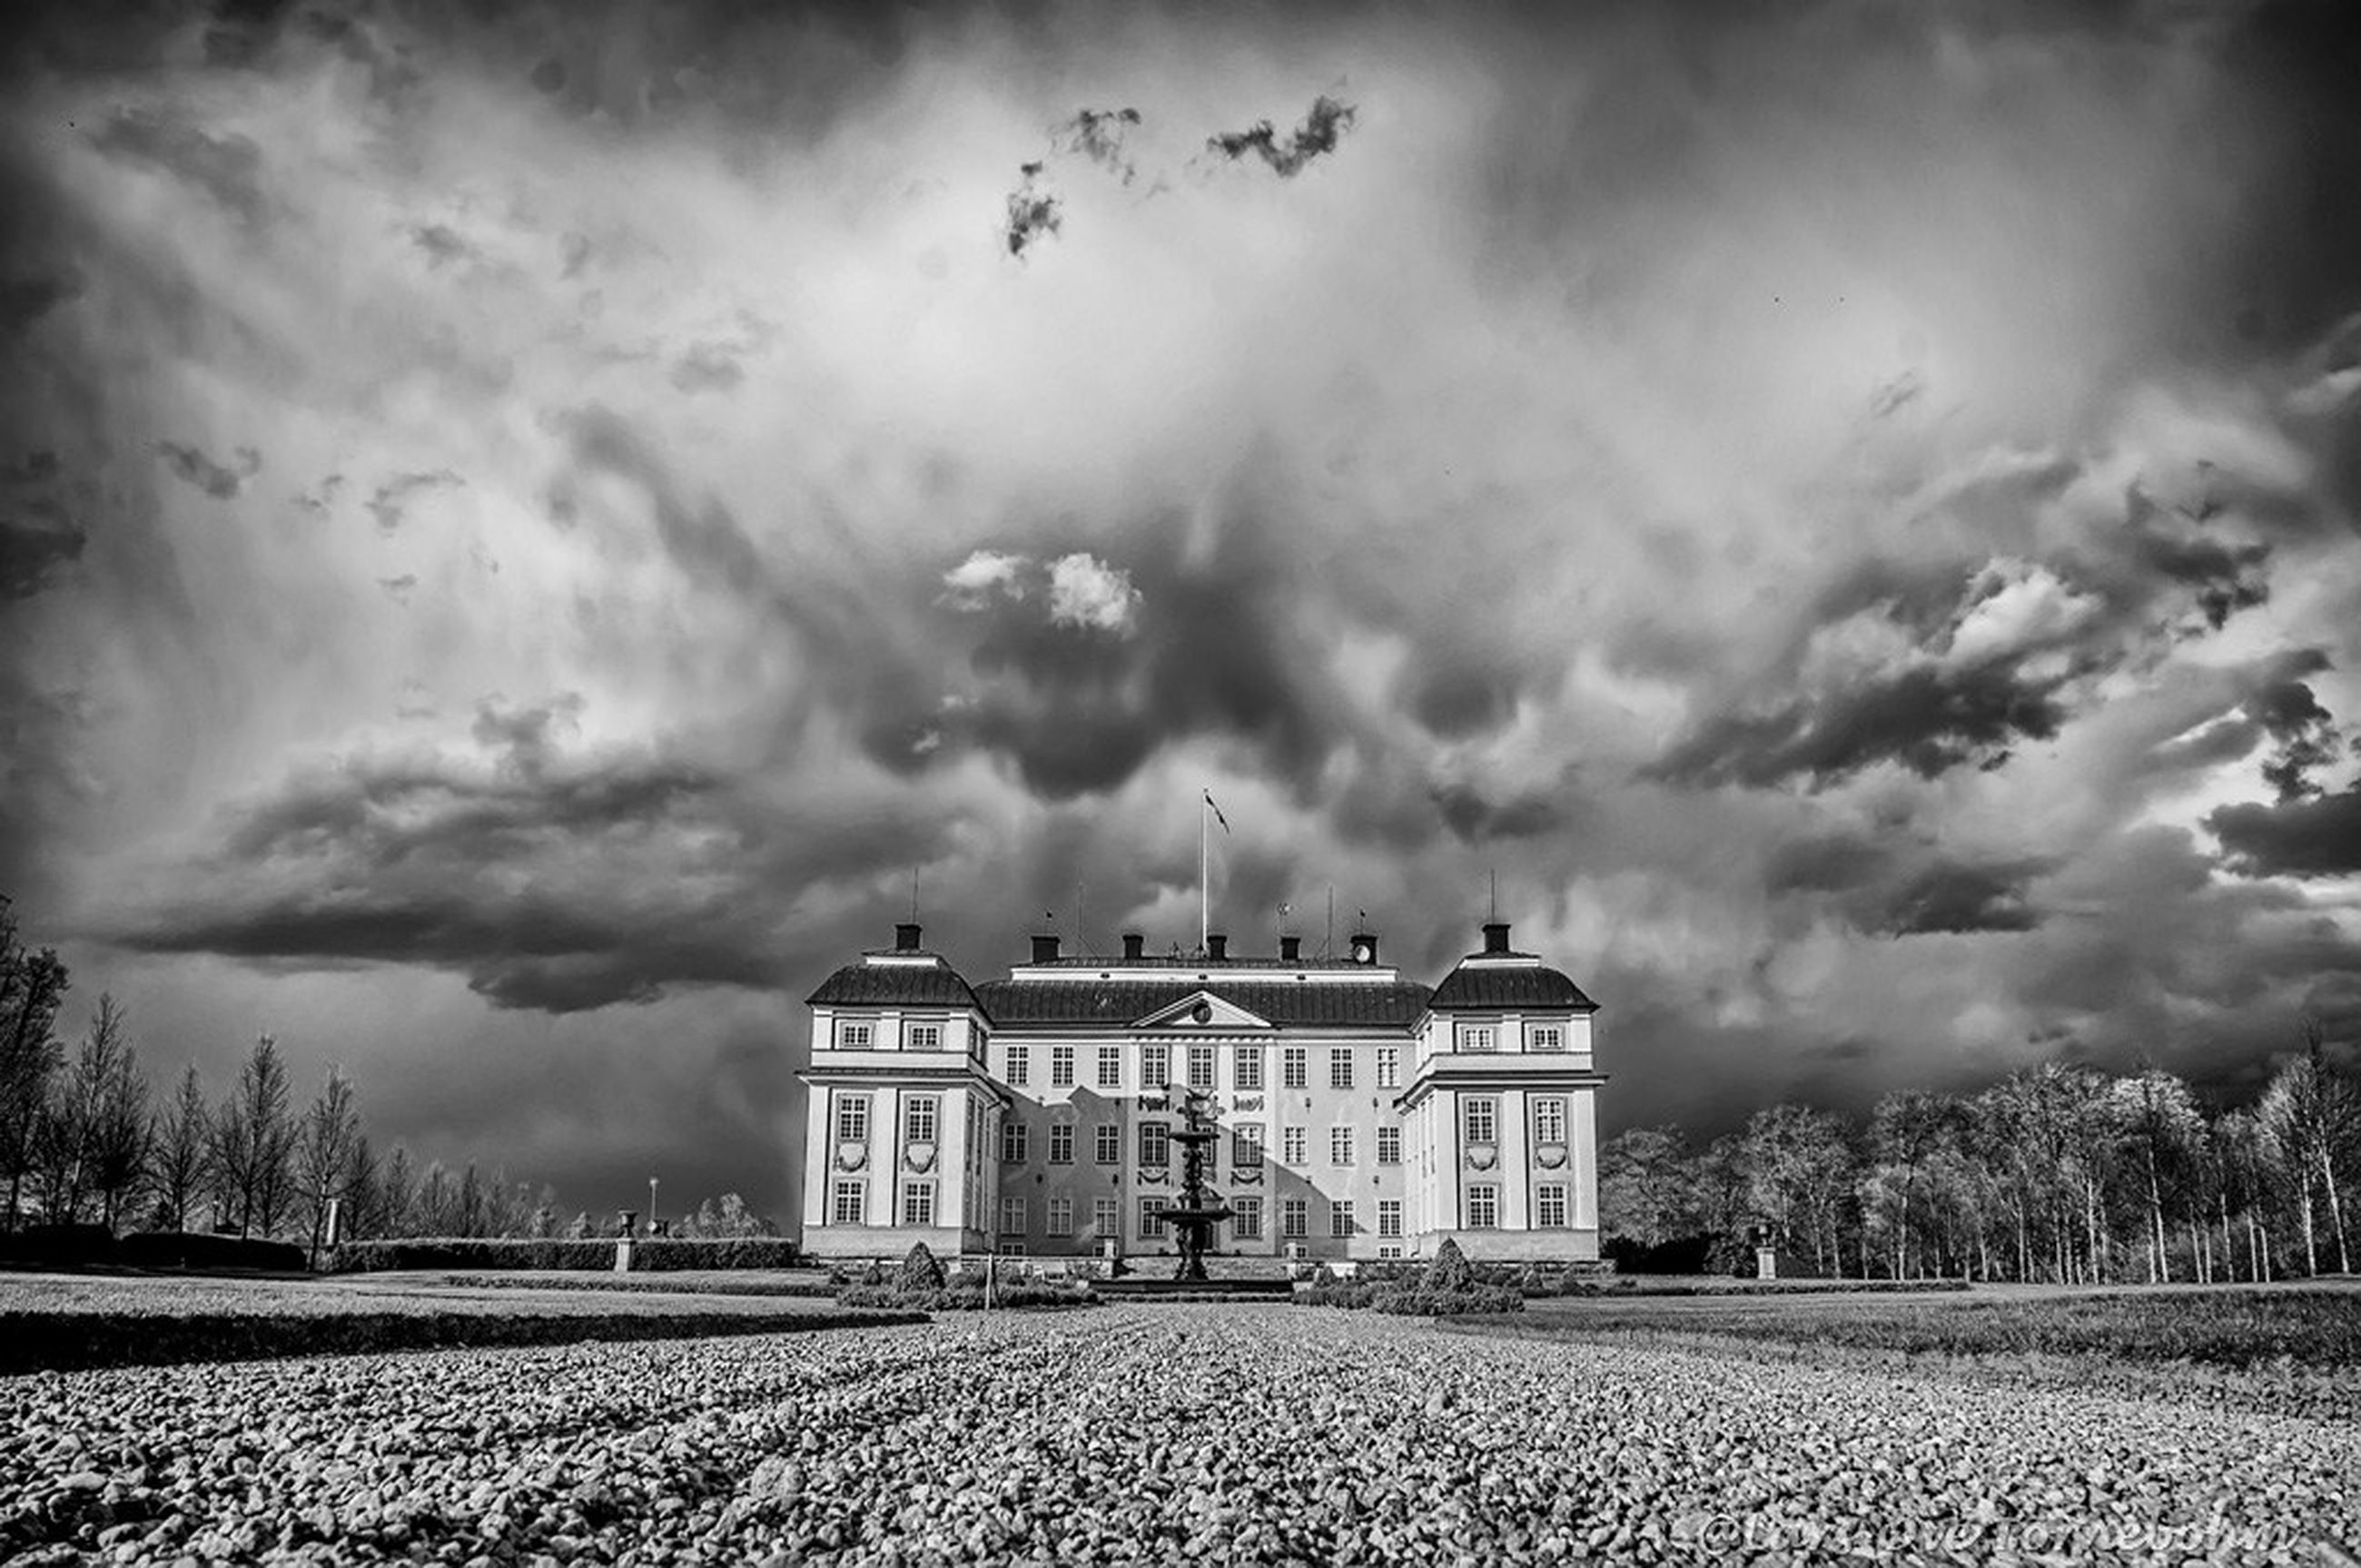 building exterior, architecture, built structure, sky, cloud - sky, field, cloudy, rural scene, house, landscape, grass, agriculture, overcast, cloud, weather, nature, day, farm, tree, outdoors